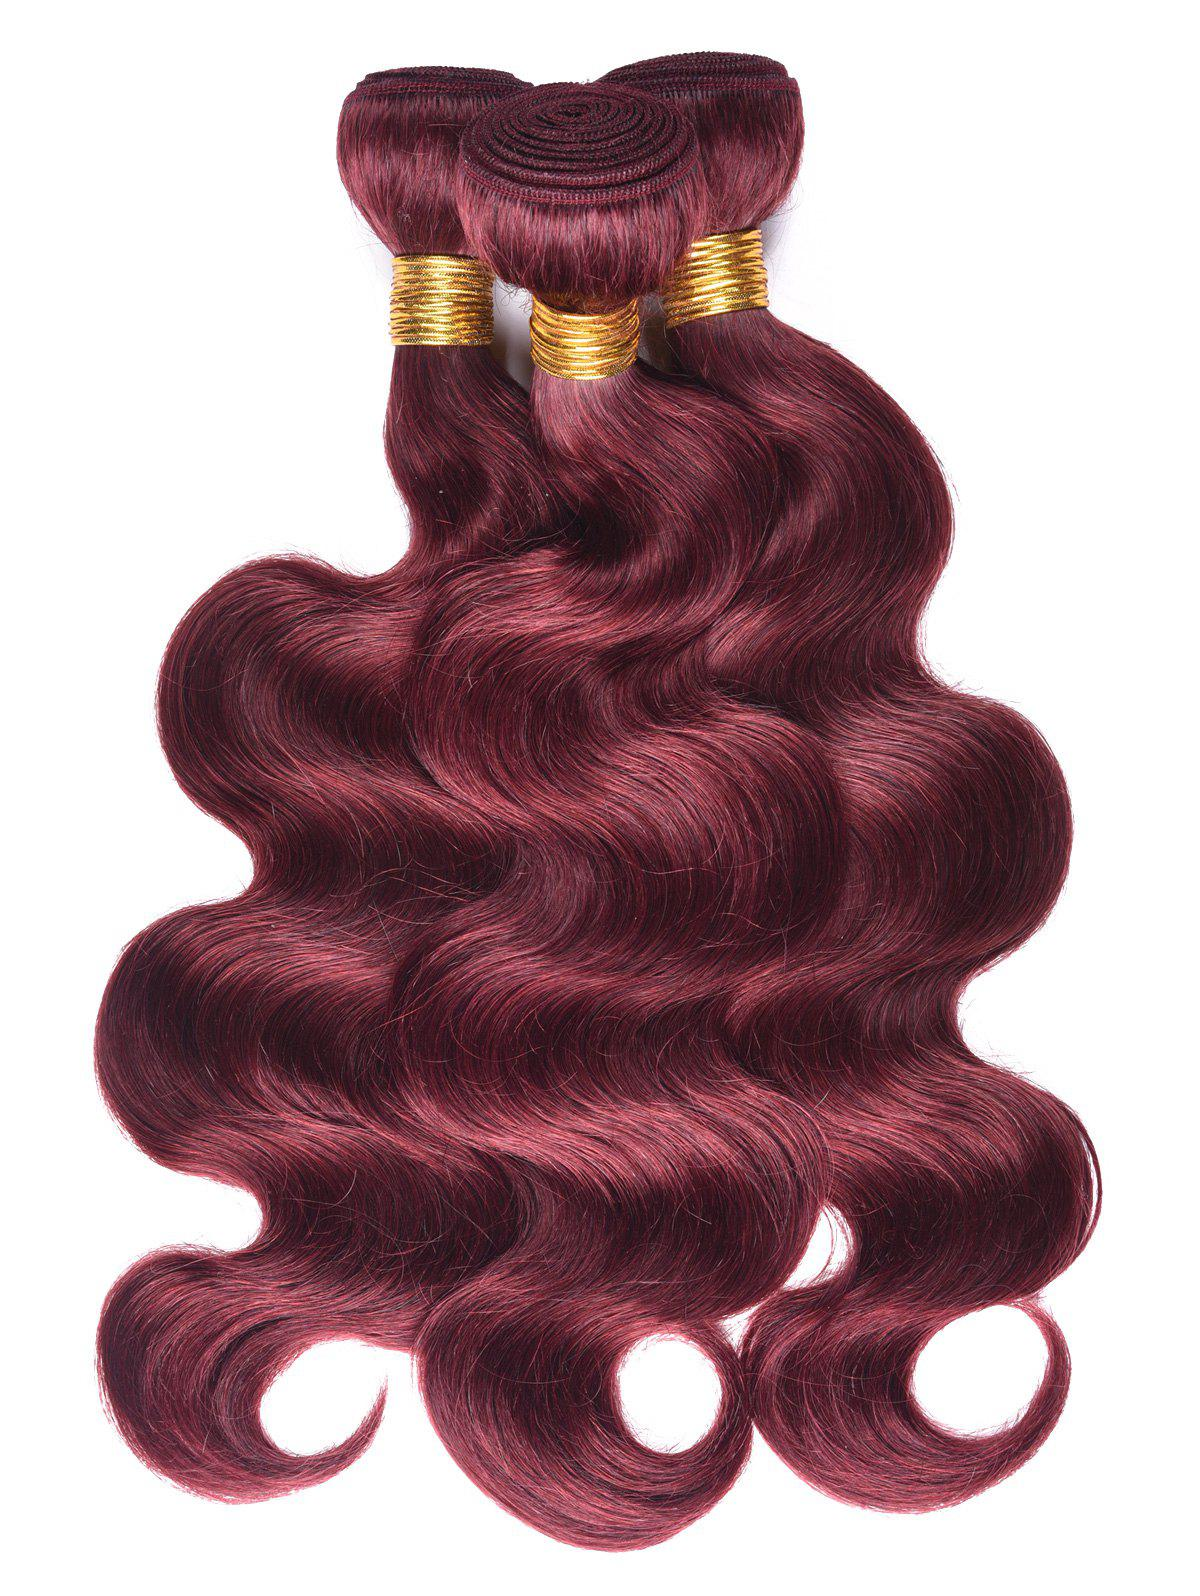 Dyeable Permed Body Wave 3Pcs Human Hair Indian Hair Weaves - RED WINE 16INCH*16INCH*16INCH